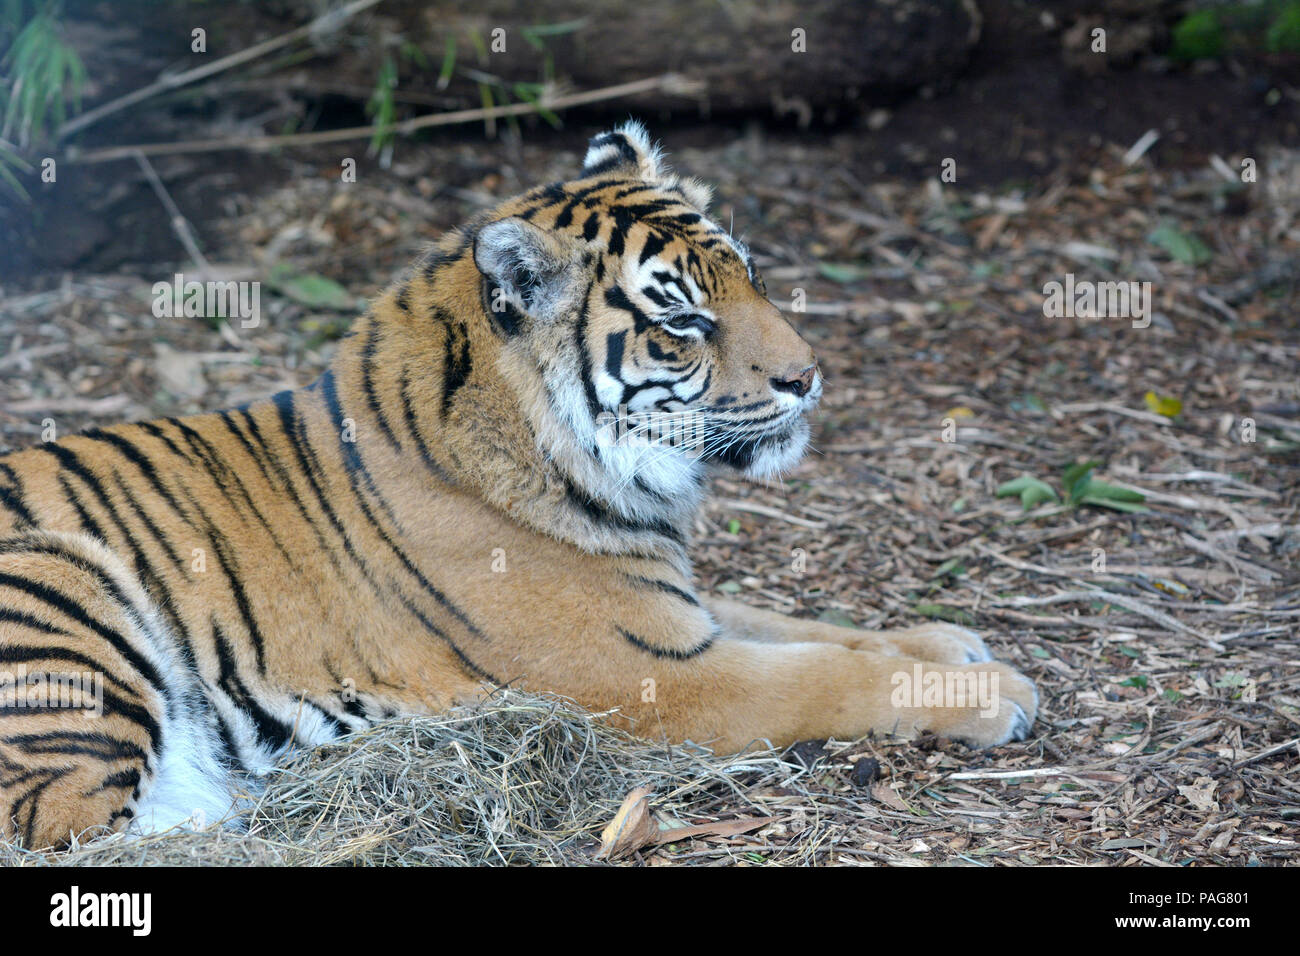 Face of a Sumatran tiger lying down on the ground. Sumatran tiger is endangered animal primarily due to conversion for palm oil and pulp plantations i Stock Photo